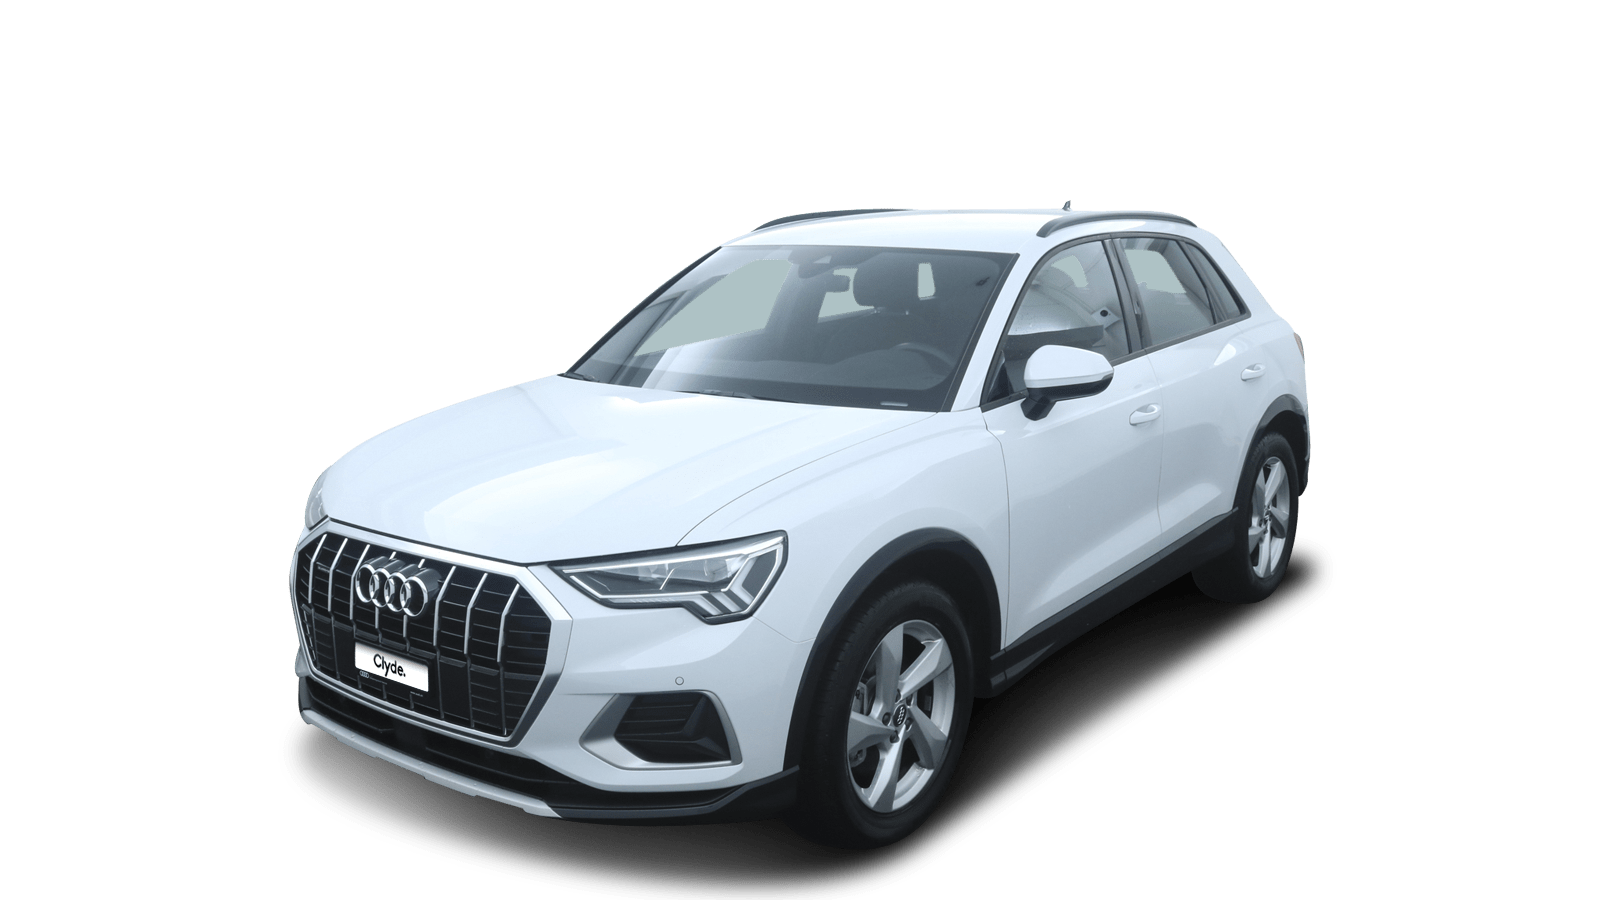 Audi Q3 Weiss front - Clyde Auto-Abo